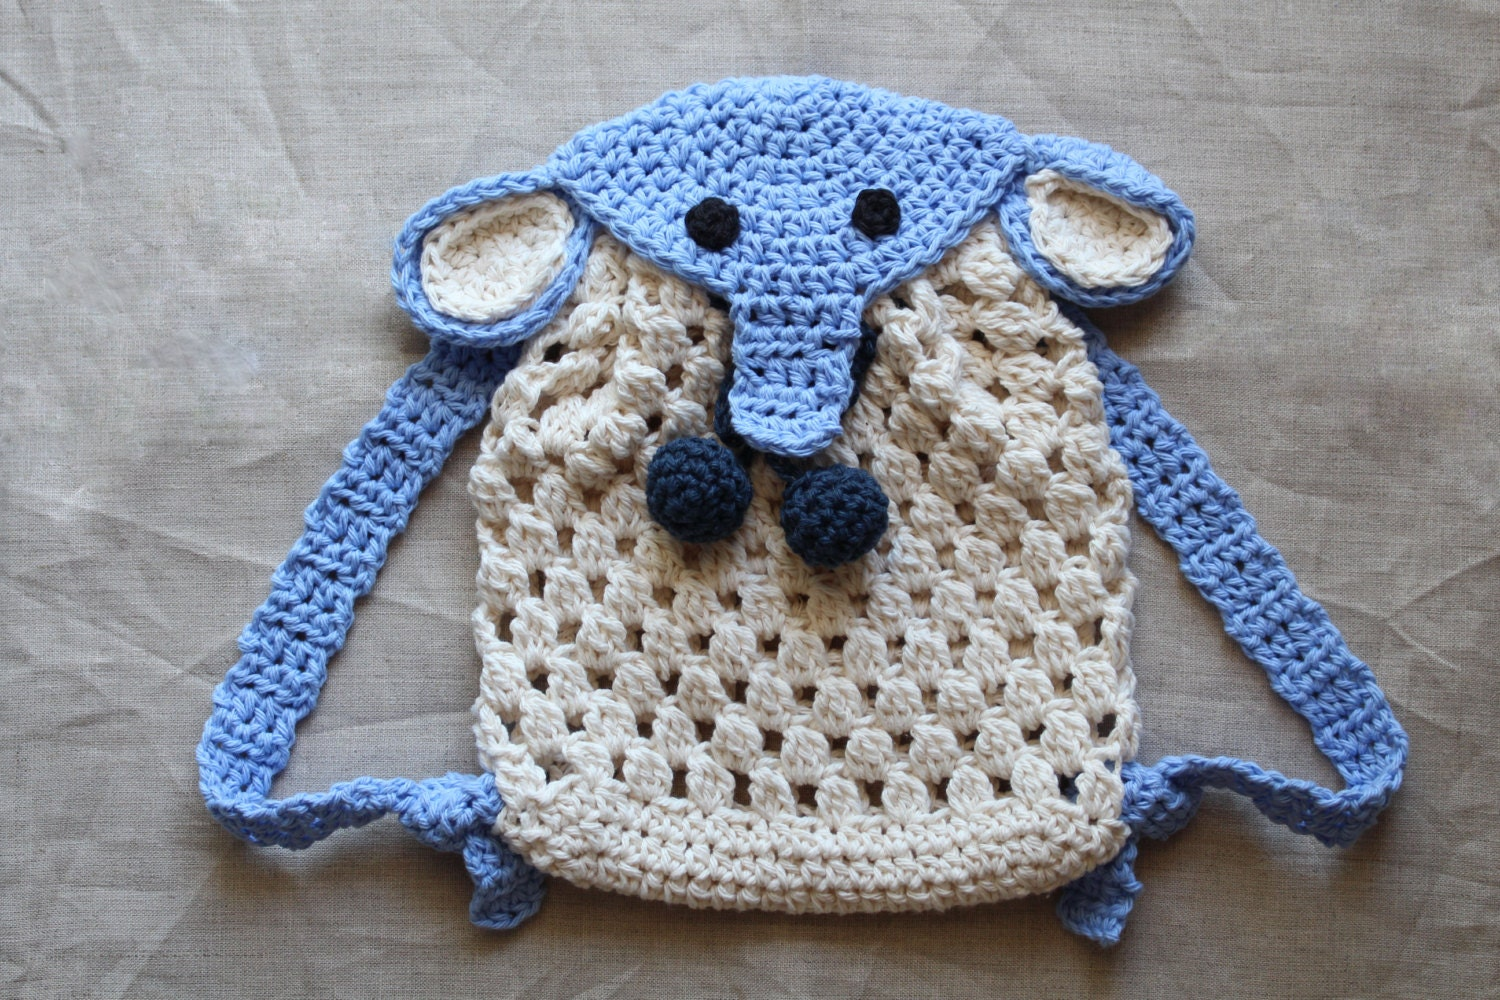 Crochet Pattern Crochet Elephant Backpack For Babies And Etsy